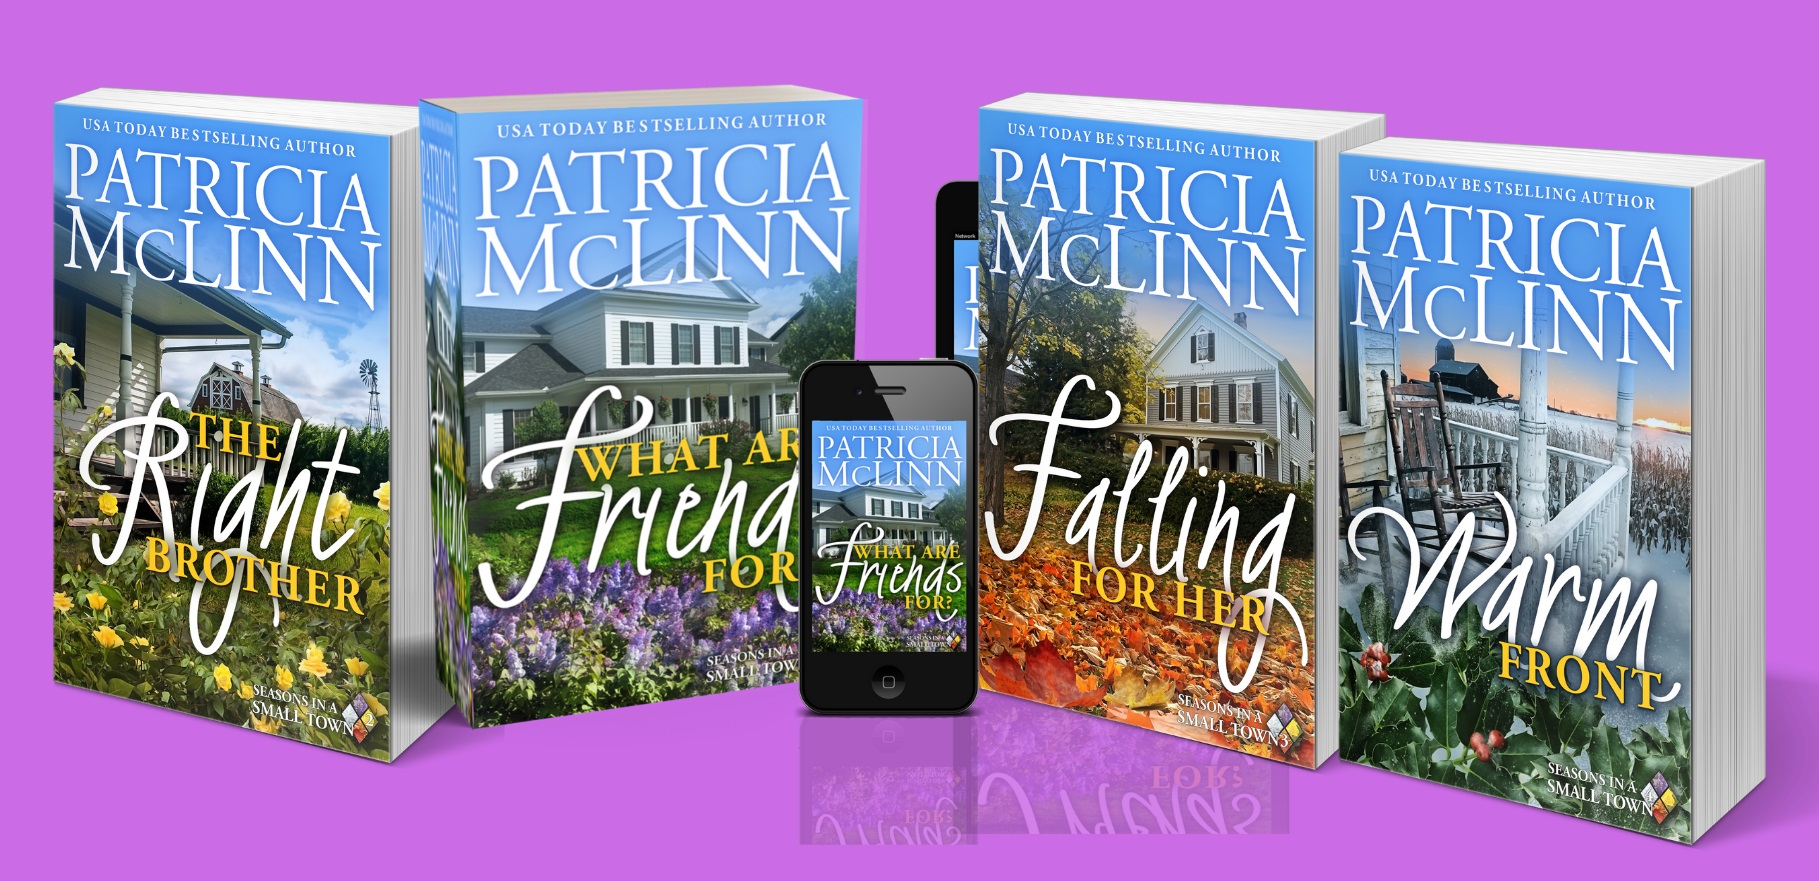 Patricia McLinn, small-town romance, romance series, contemporary romance series, books in print, paperback, women's fiction, romantic comedy